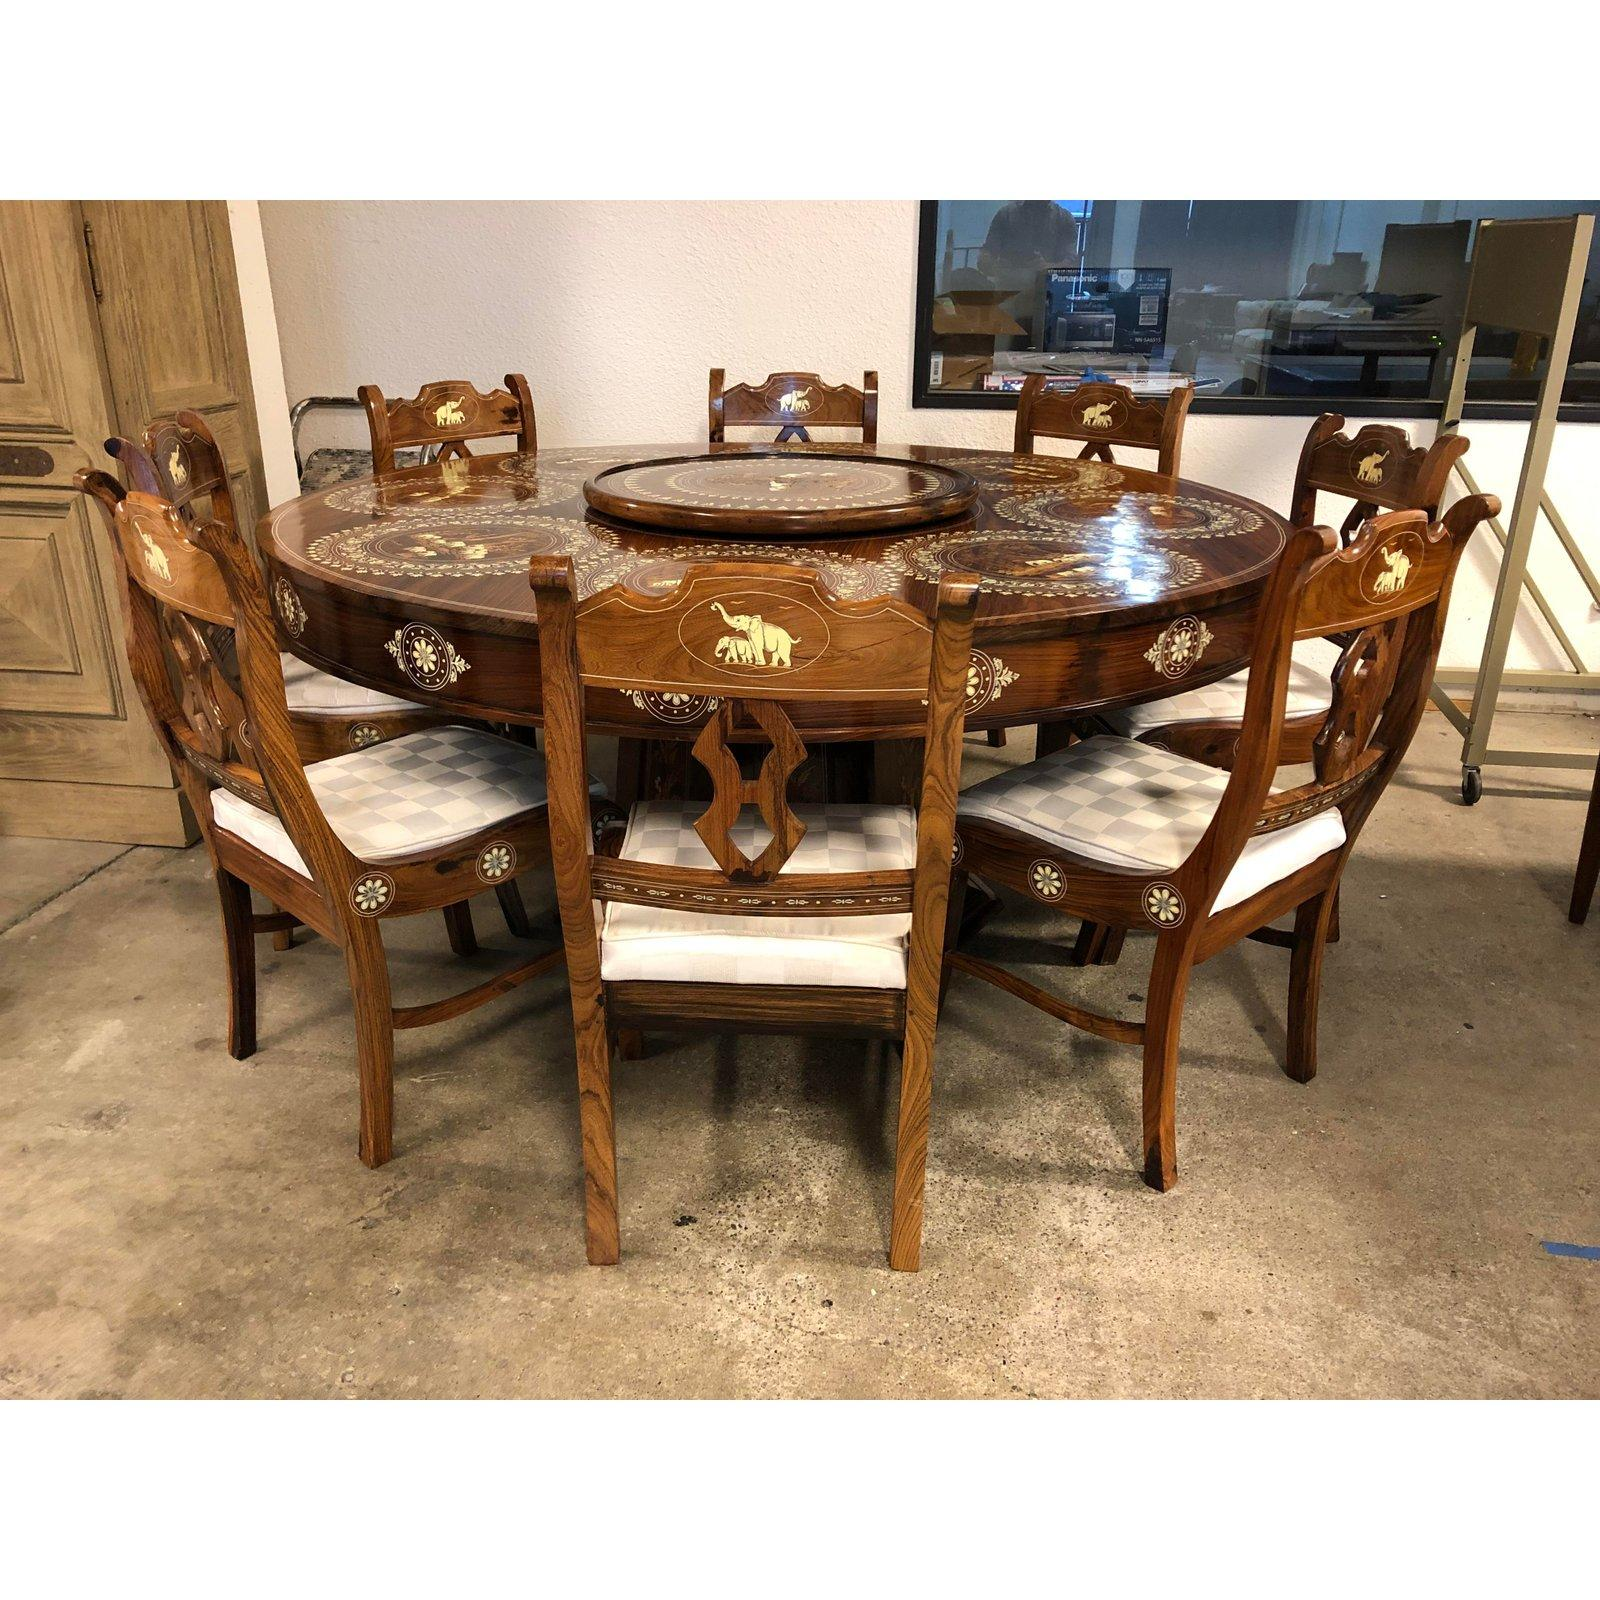 Wood And Bone Inlaid Dining Table And Eight Chairs From India